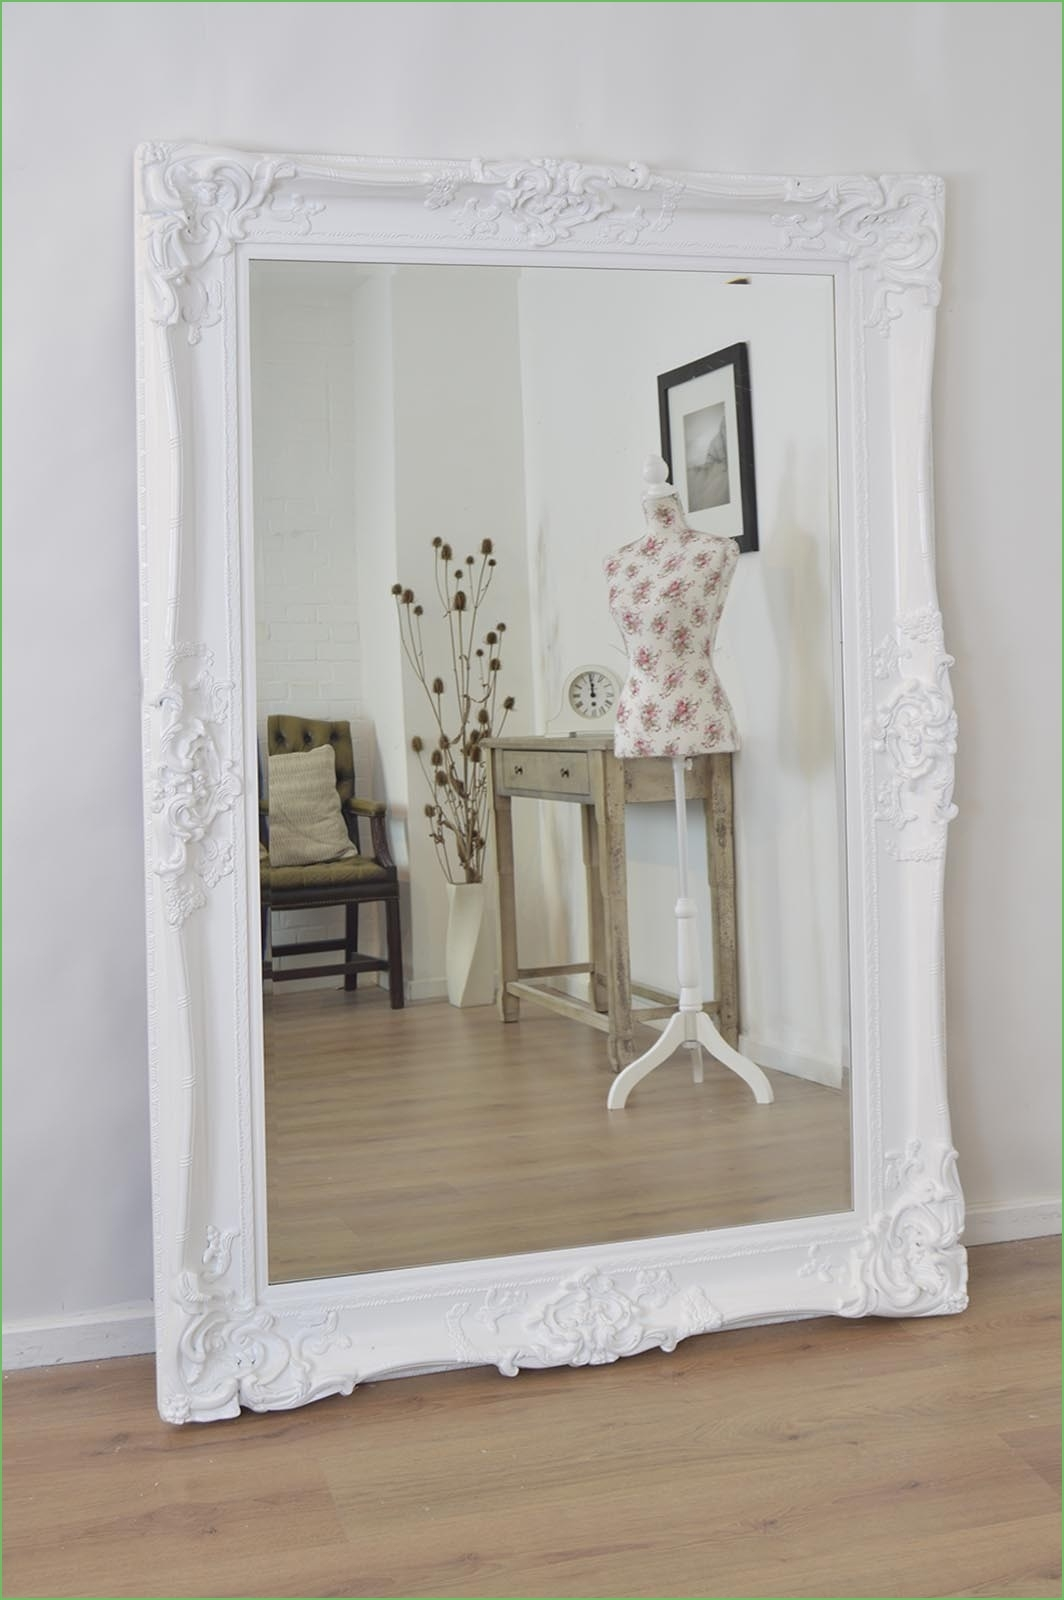 Wall Mirrors Ornate Wall Mirror Ornate Wall Mirror Black In Large Shabby Chic Mirror (Image 15 of 15)